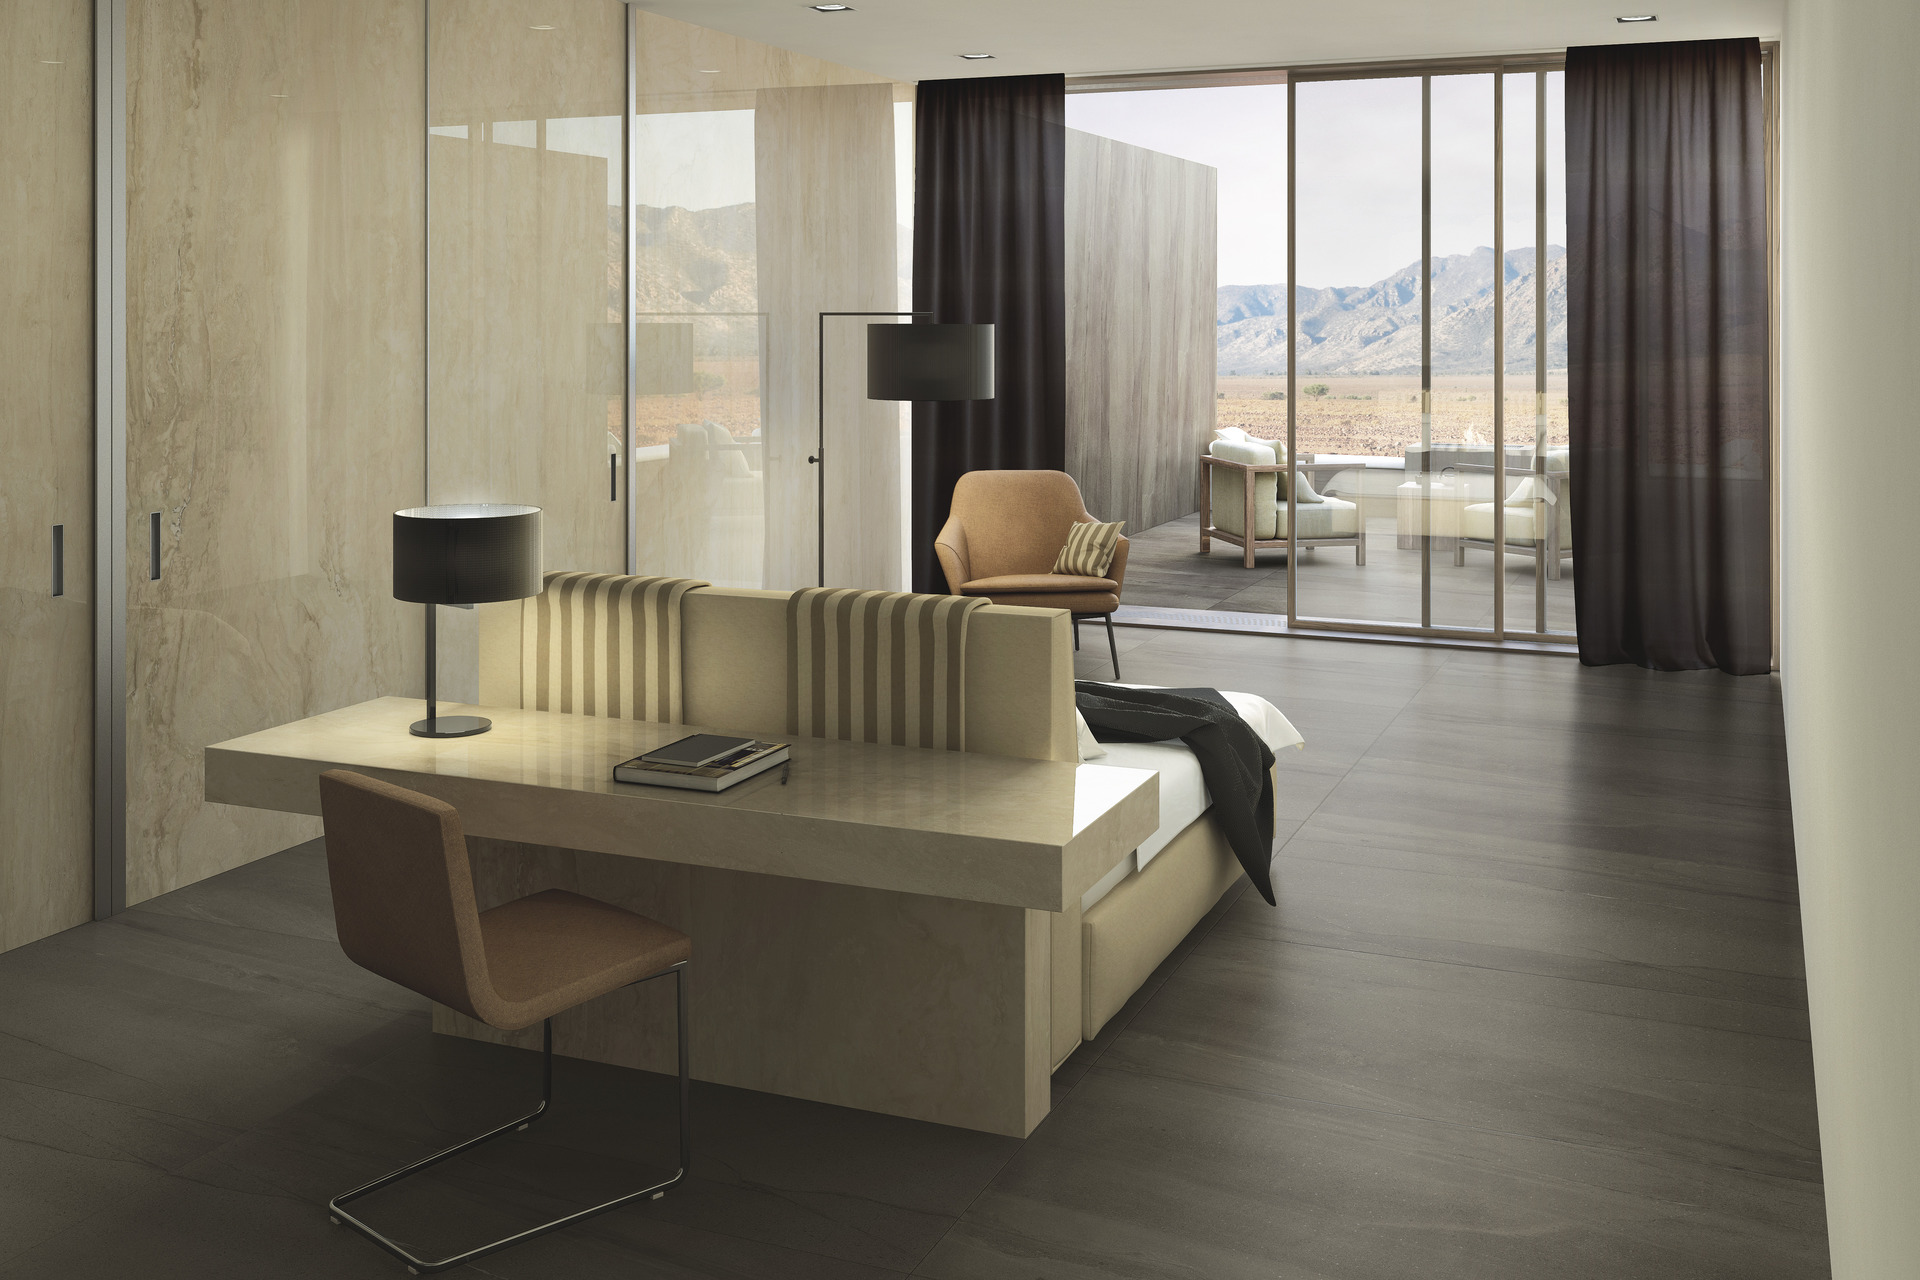 Marble Effect Porcelain Tiles - Travertino